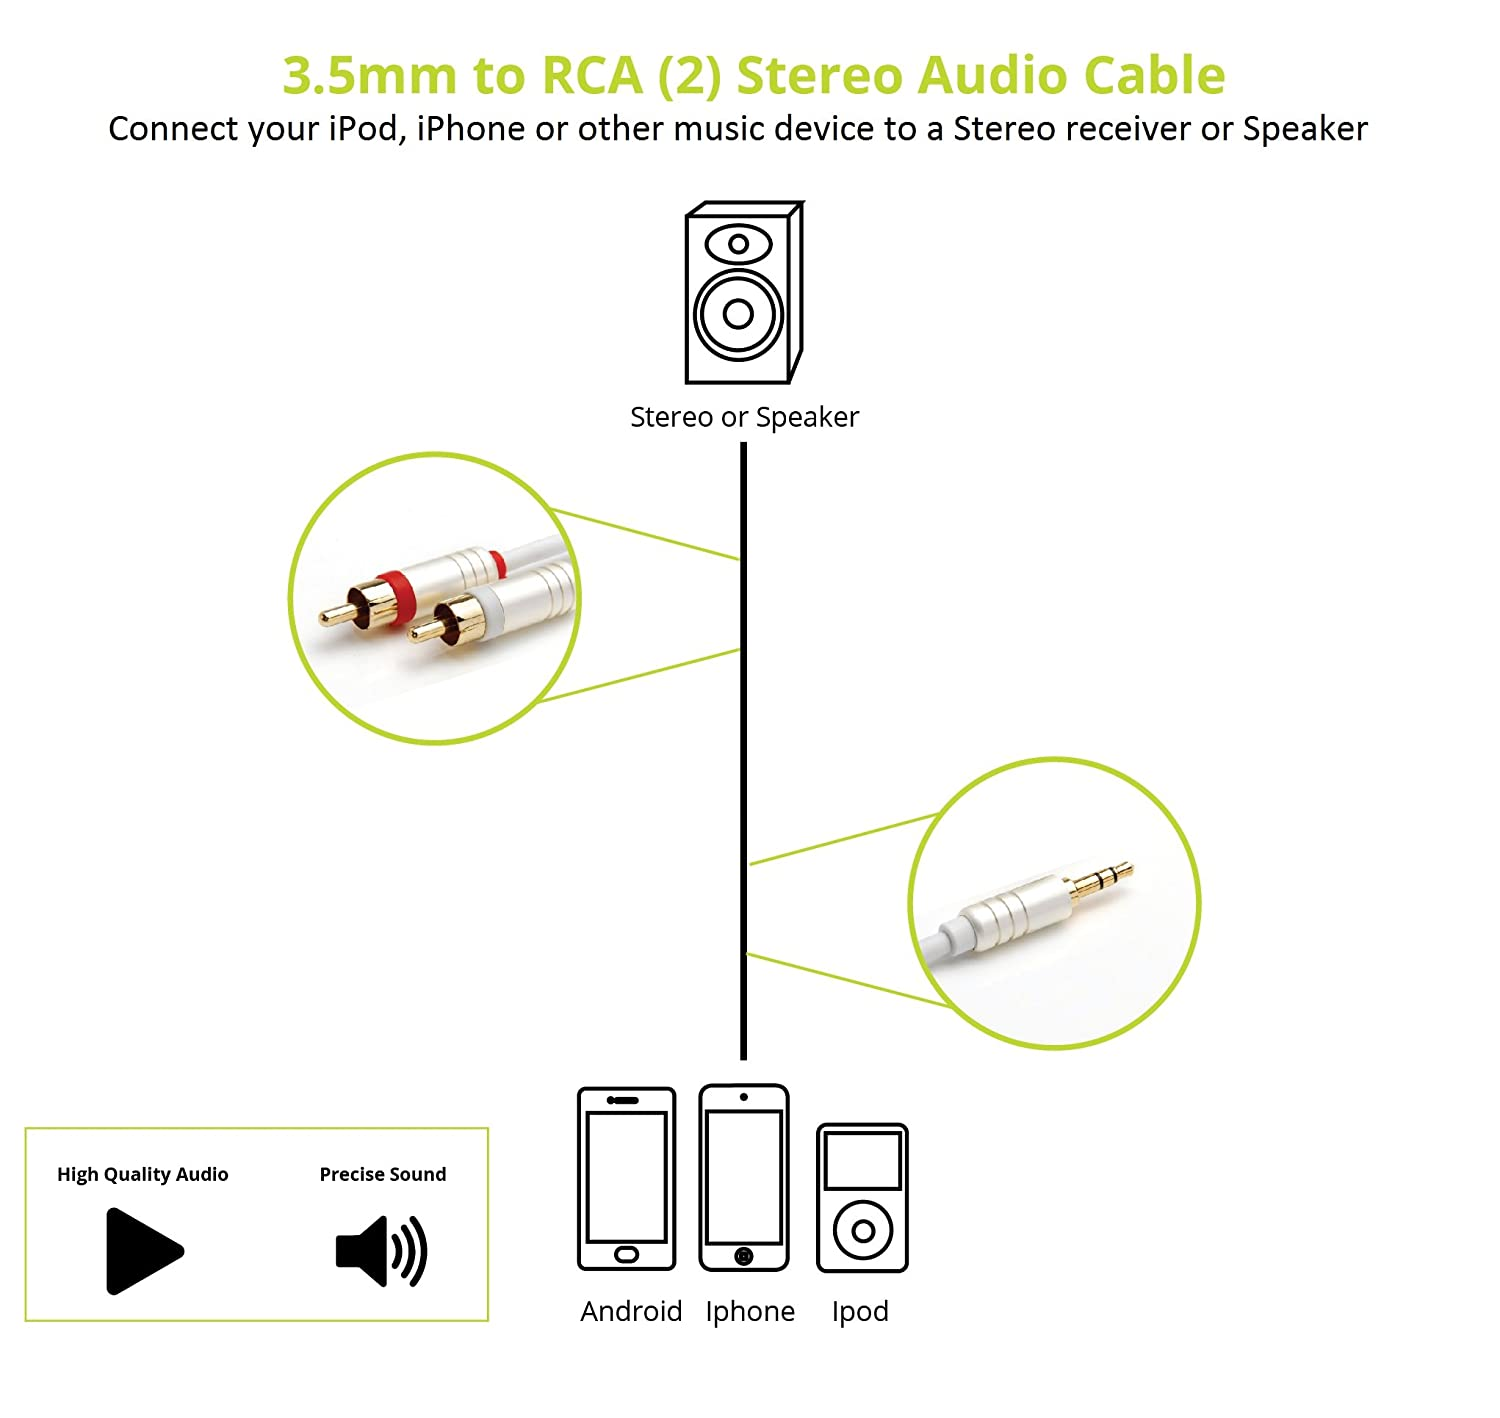 Bluerigger 35mm To Rca 2 Stereo Audio Cable 12 Feet 36meters Surround Sound Wiring Diagram Electronics